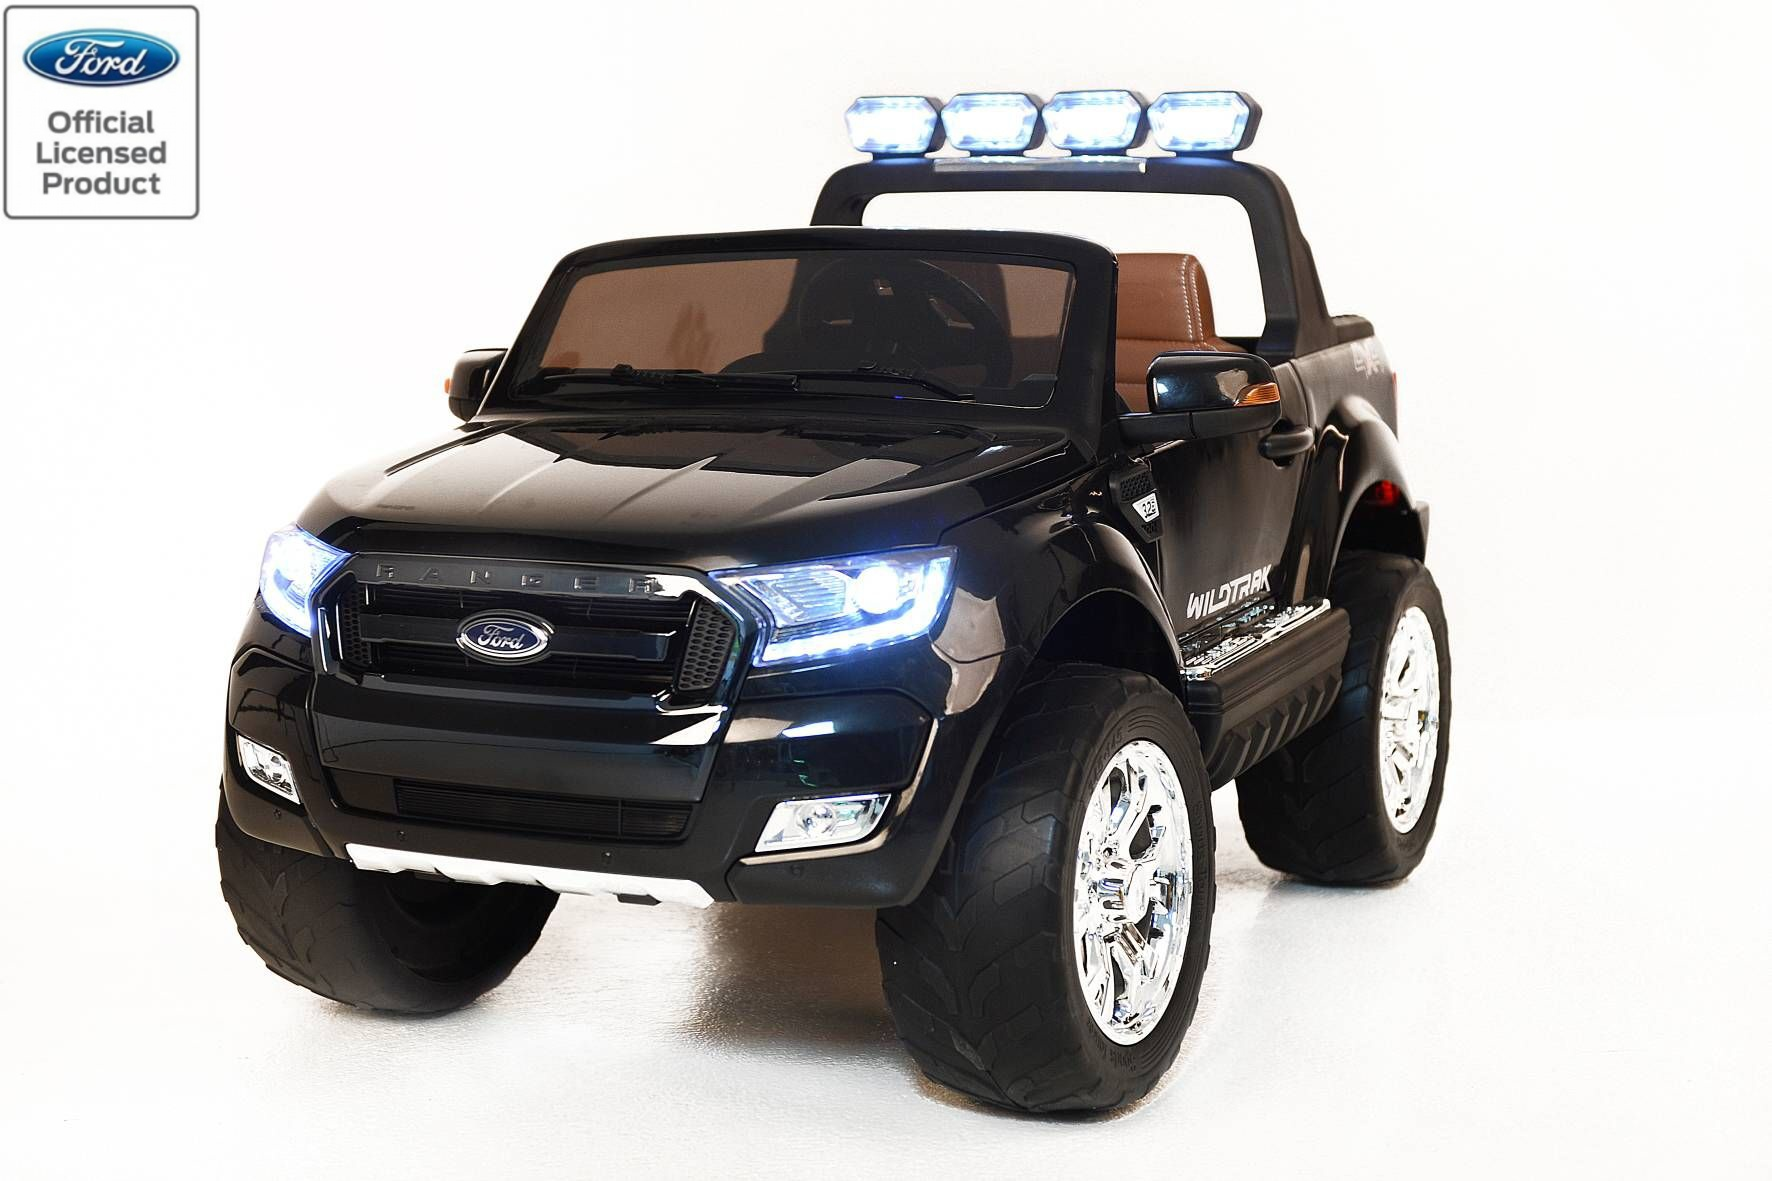 Ford Ranger Pick Up Truck 4x4 Černý